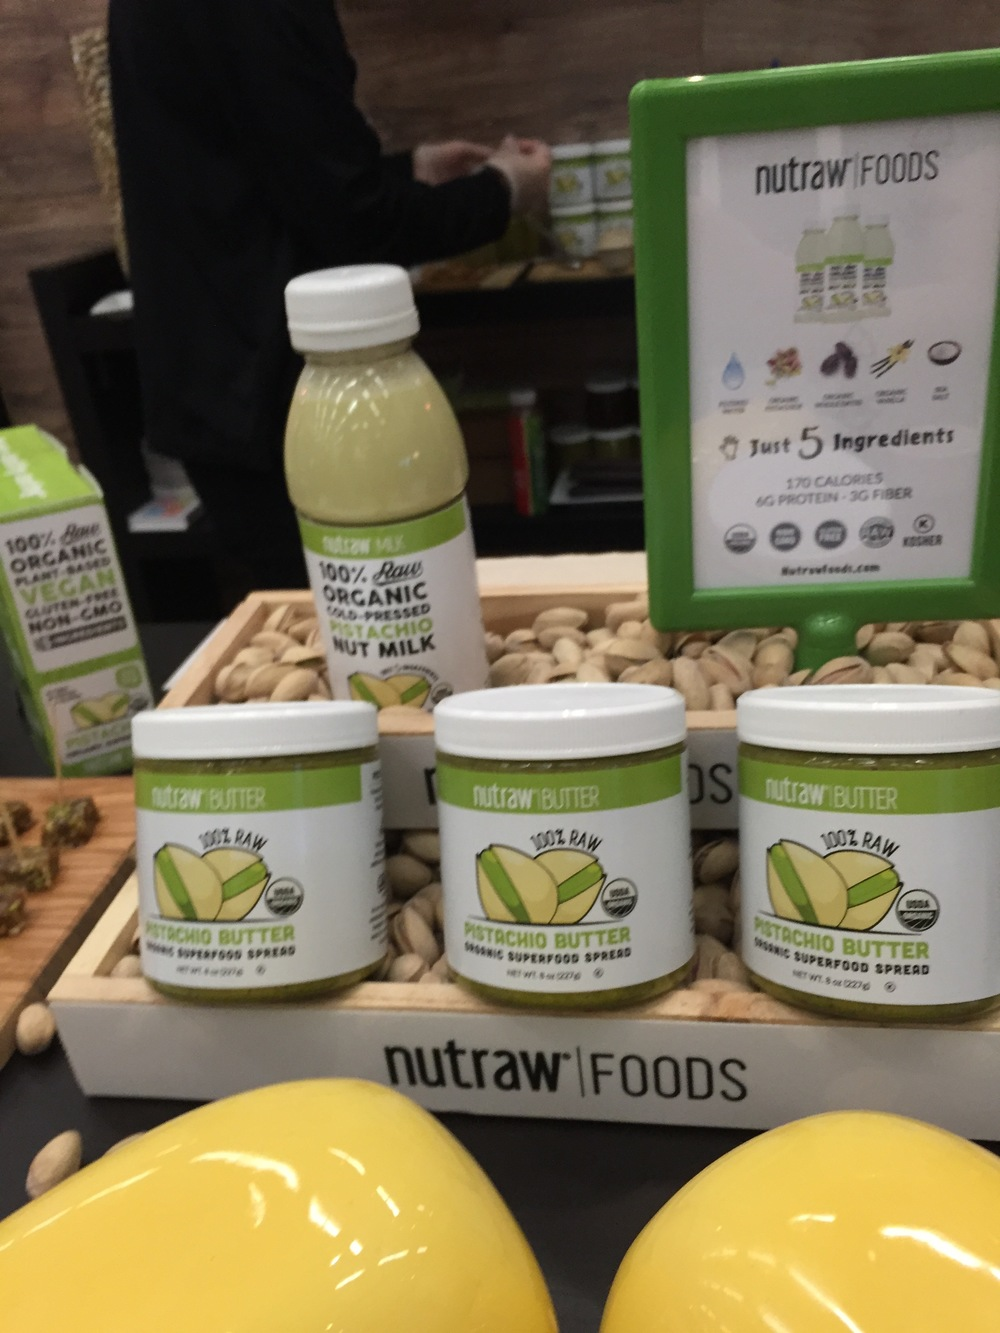 Nutraw Foods